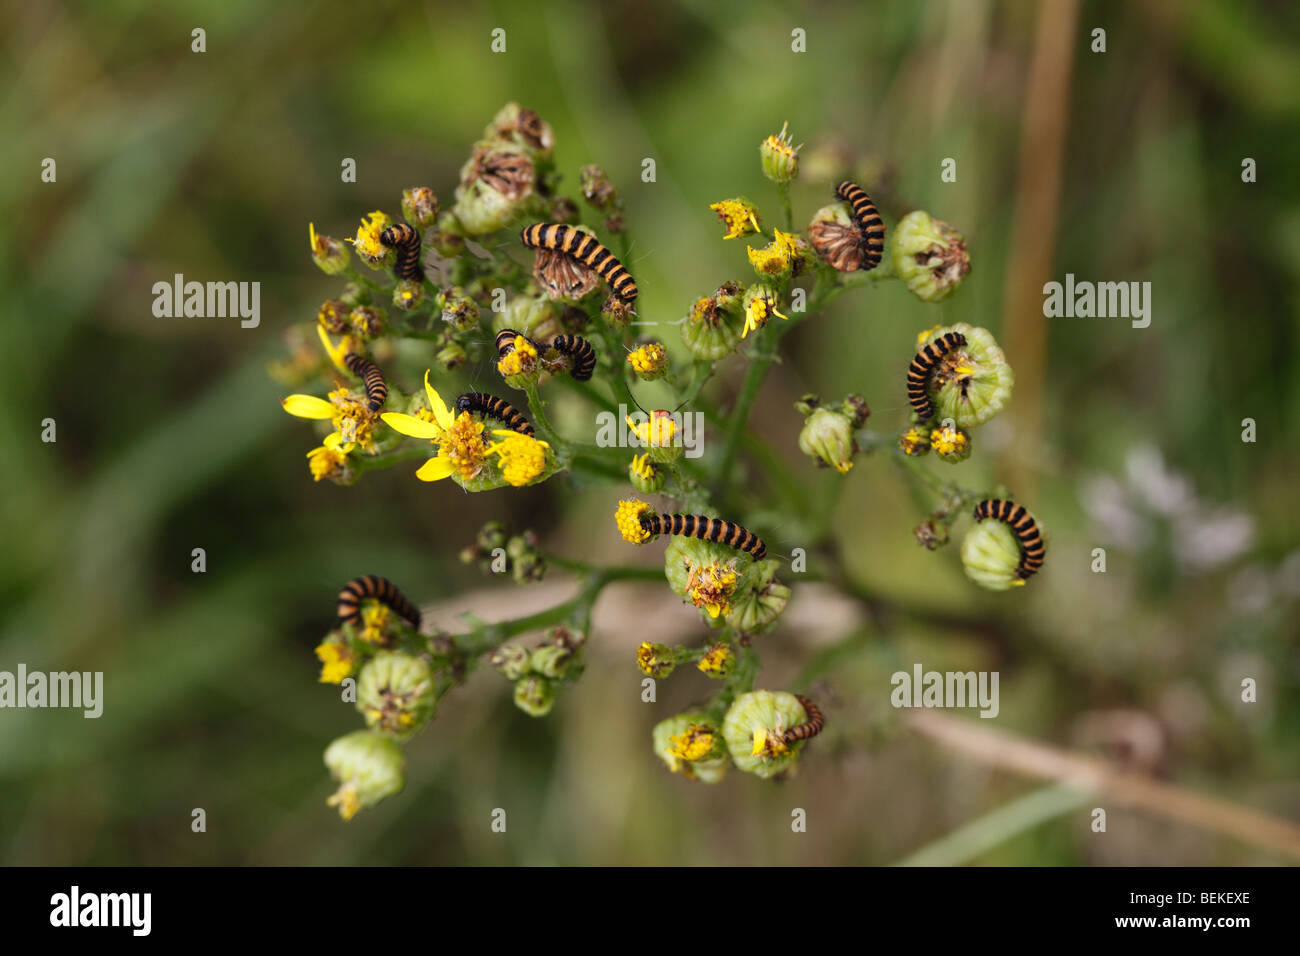 Cinnabar moth (Callimorpha jacobaeae) caterpillars feeding on ragwort - Stock Image